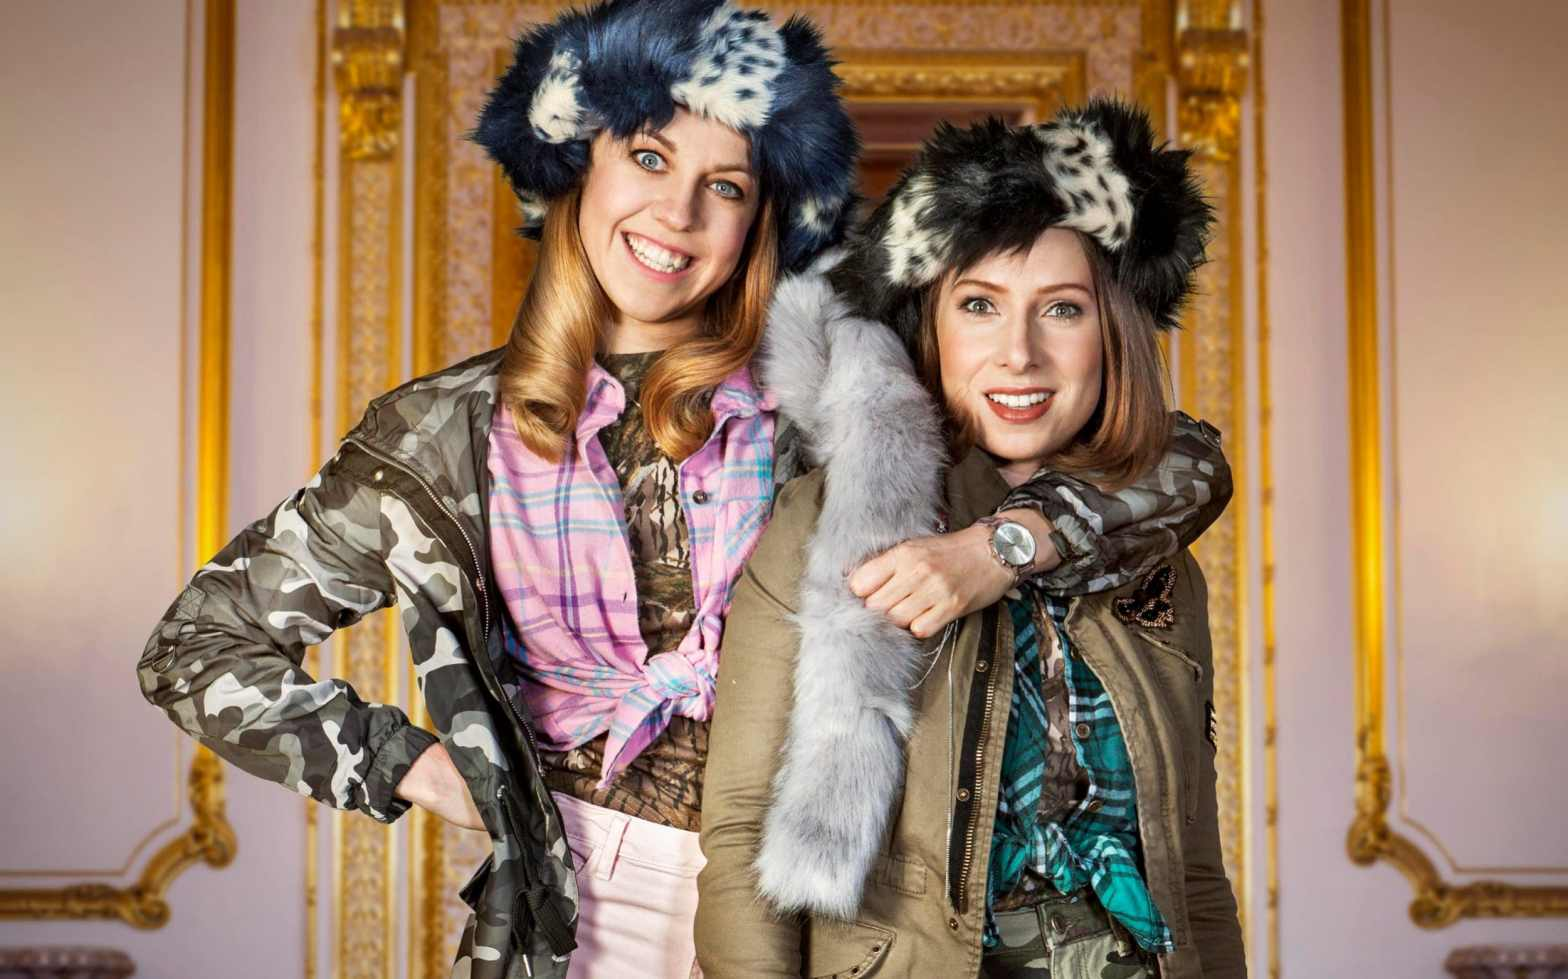 Ellie White & Celeste Dring in character for The Windsors.